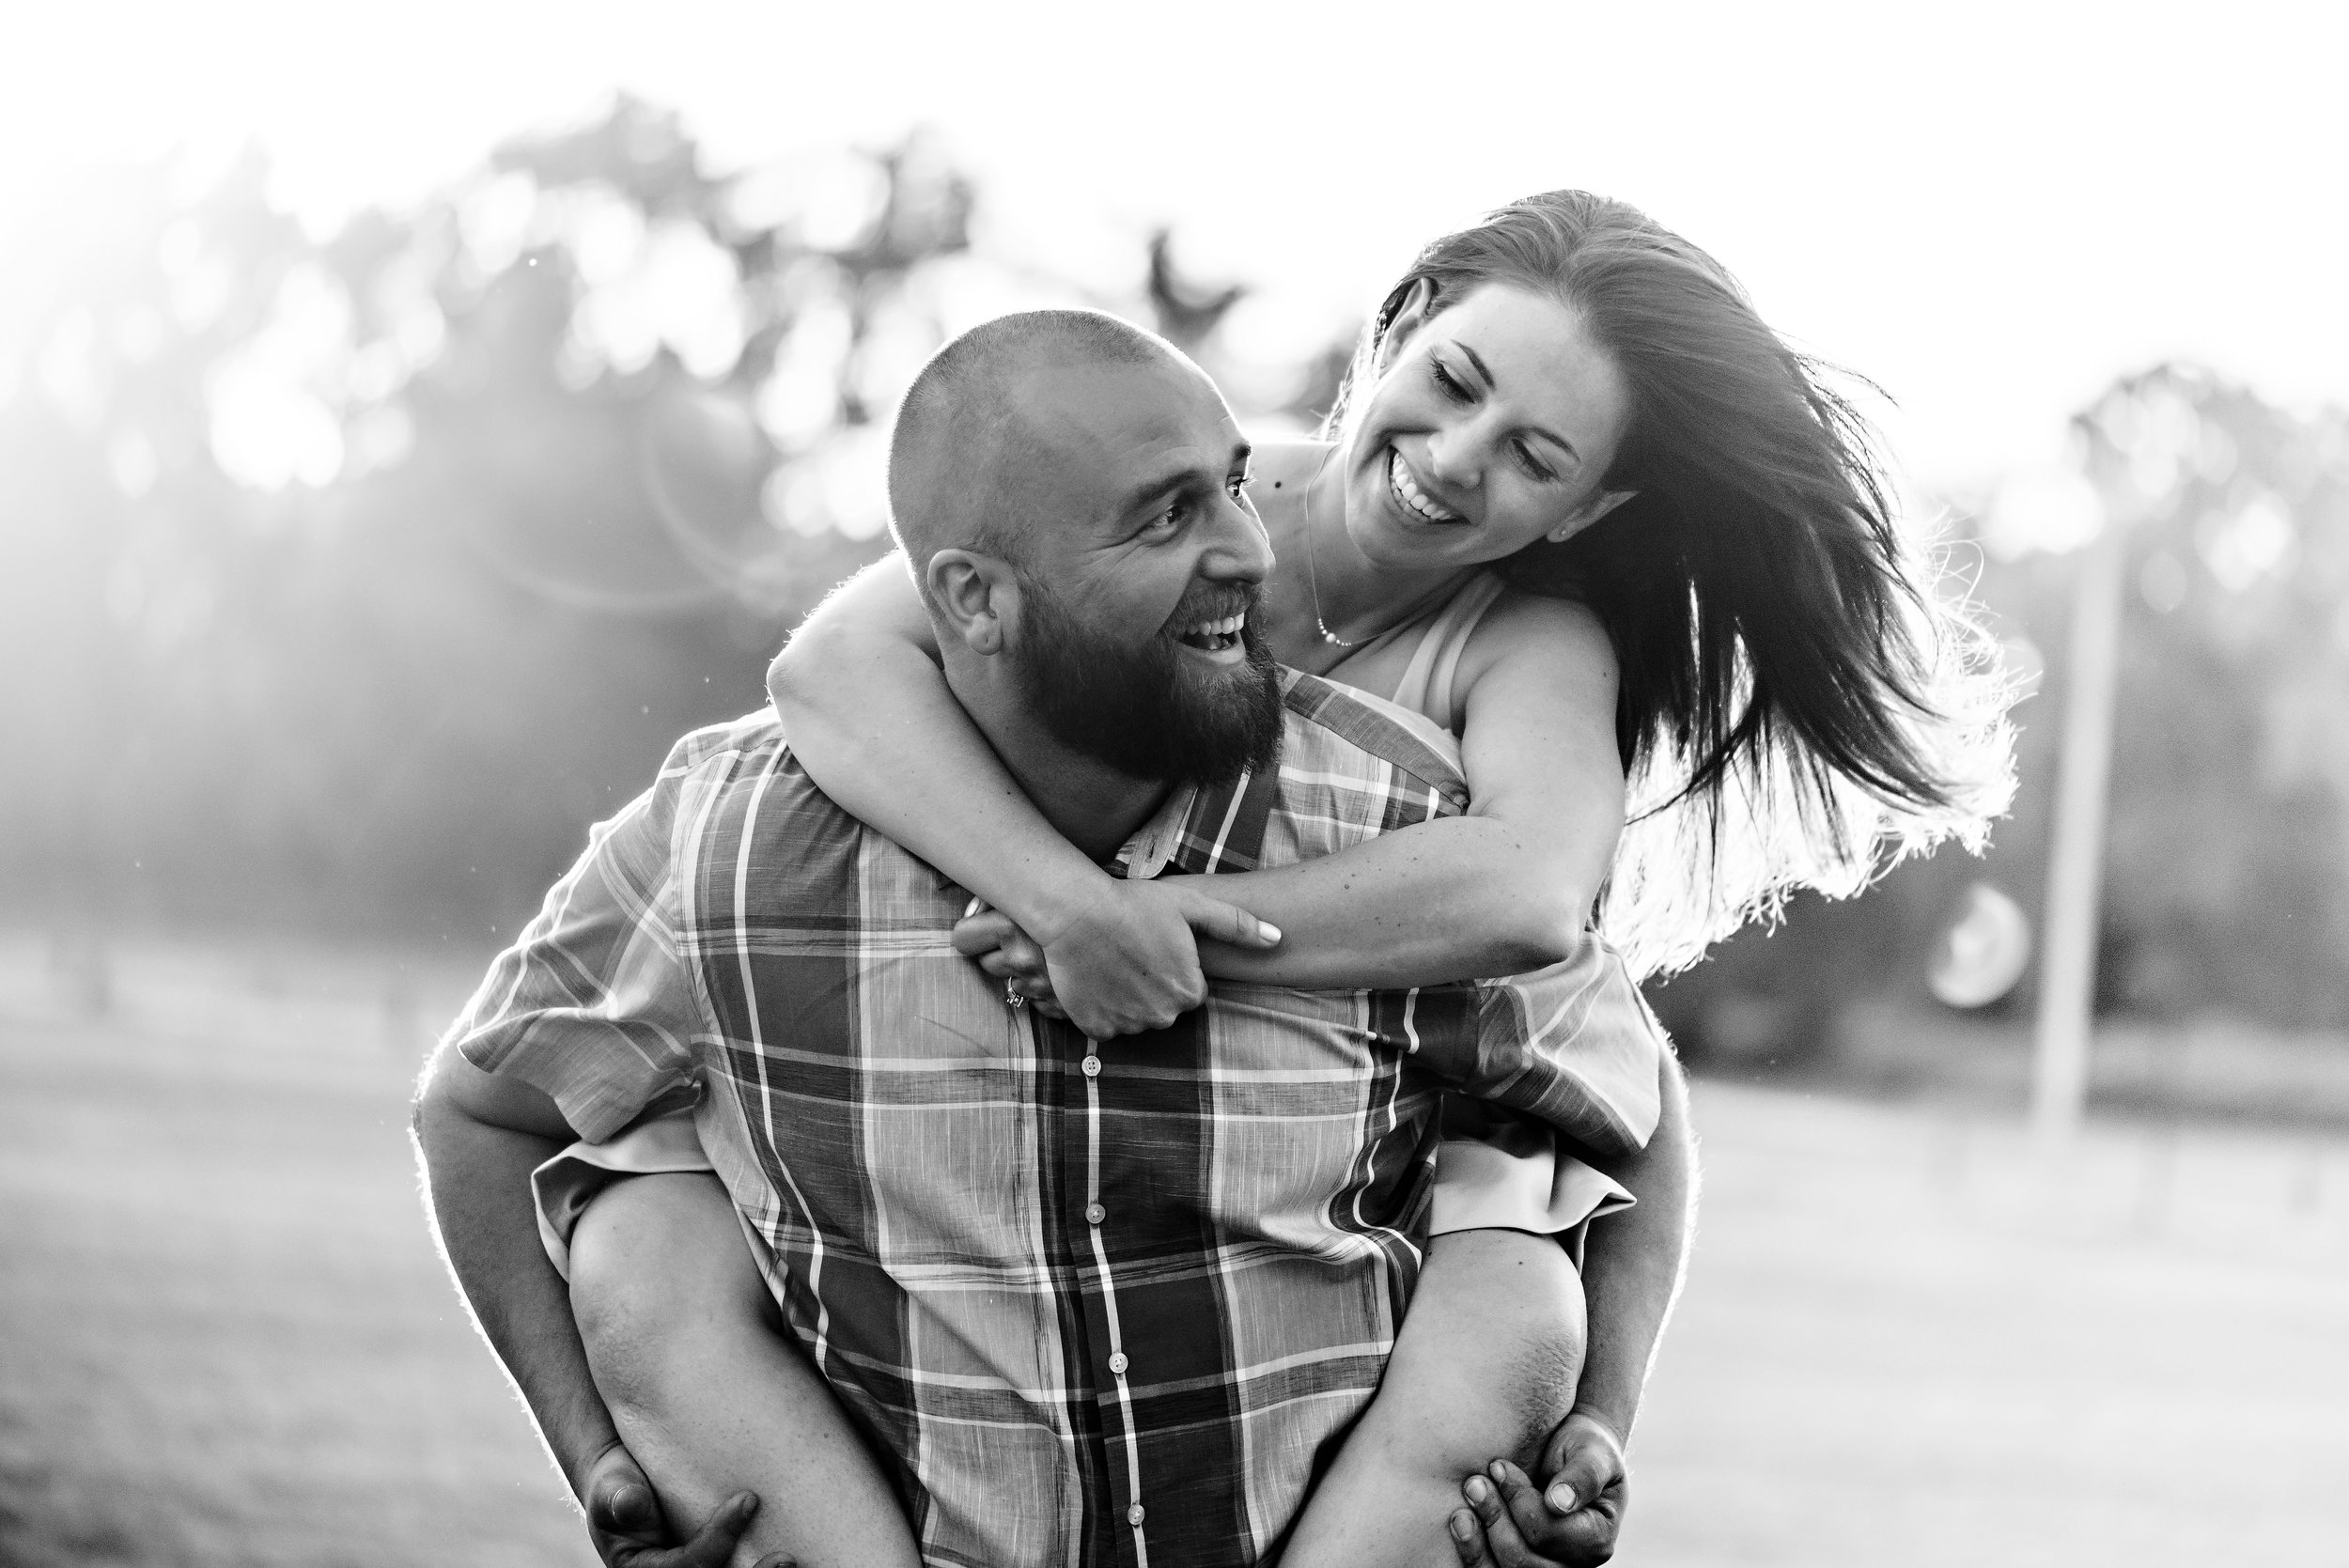 holly-mike-048-engagement-sacramento-wedding-photographer-katherine-nicole-photography.JPG